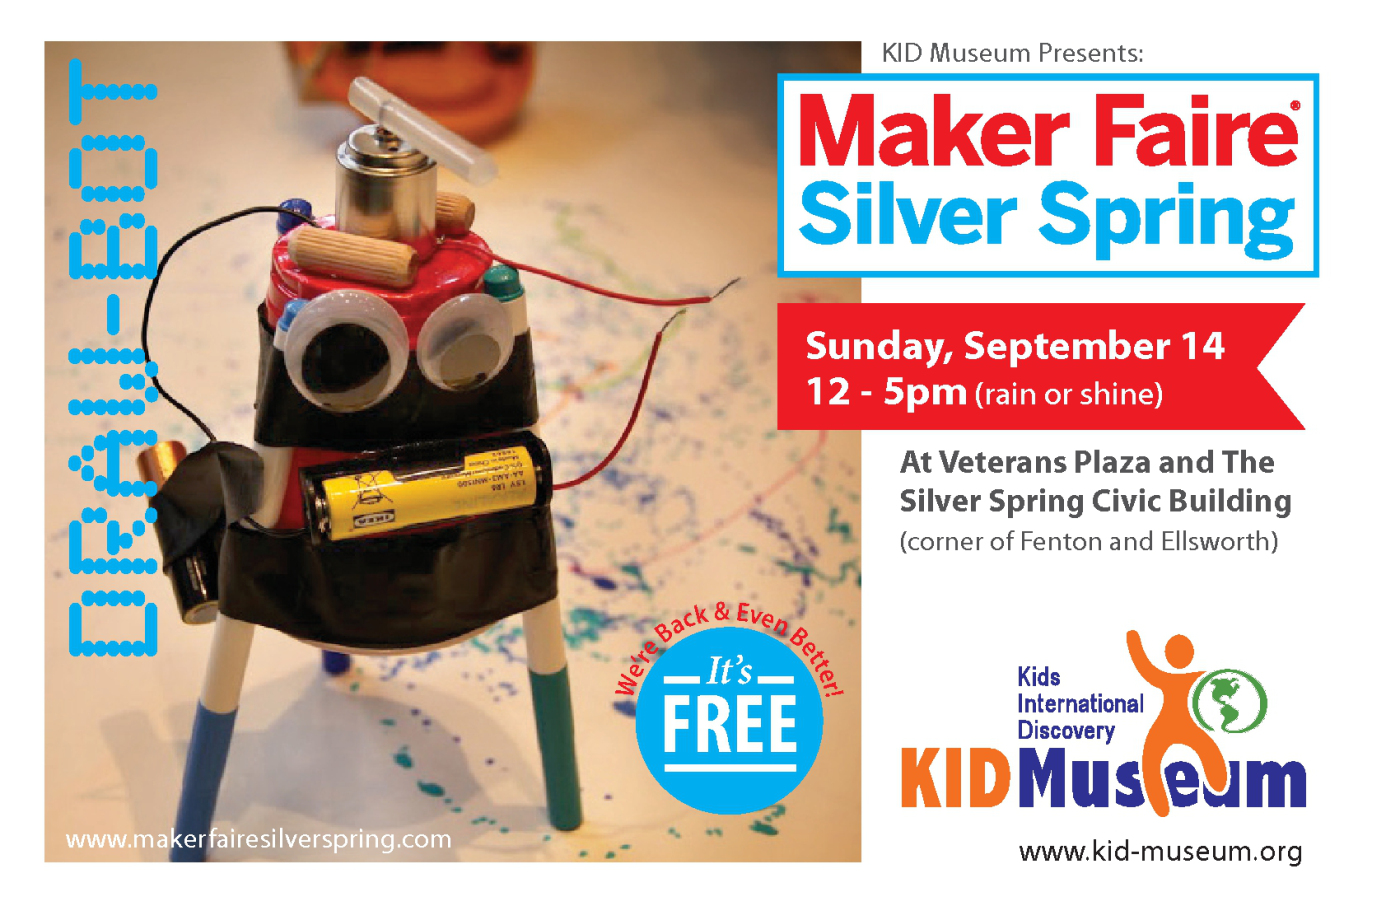 Free Kid Friendly Event Maker Faire Silver Spring